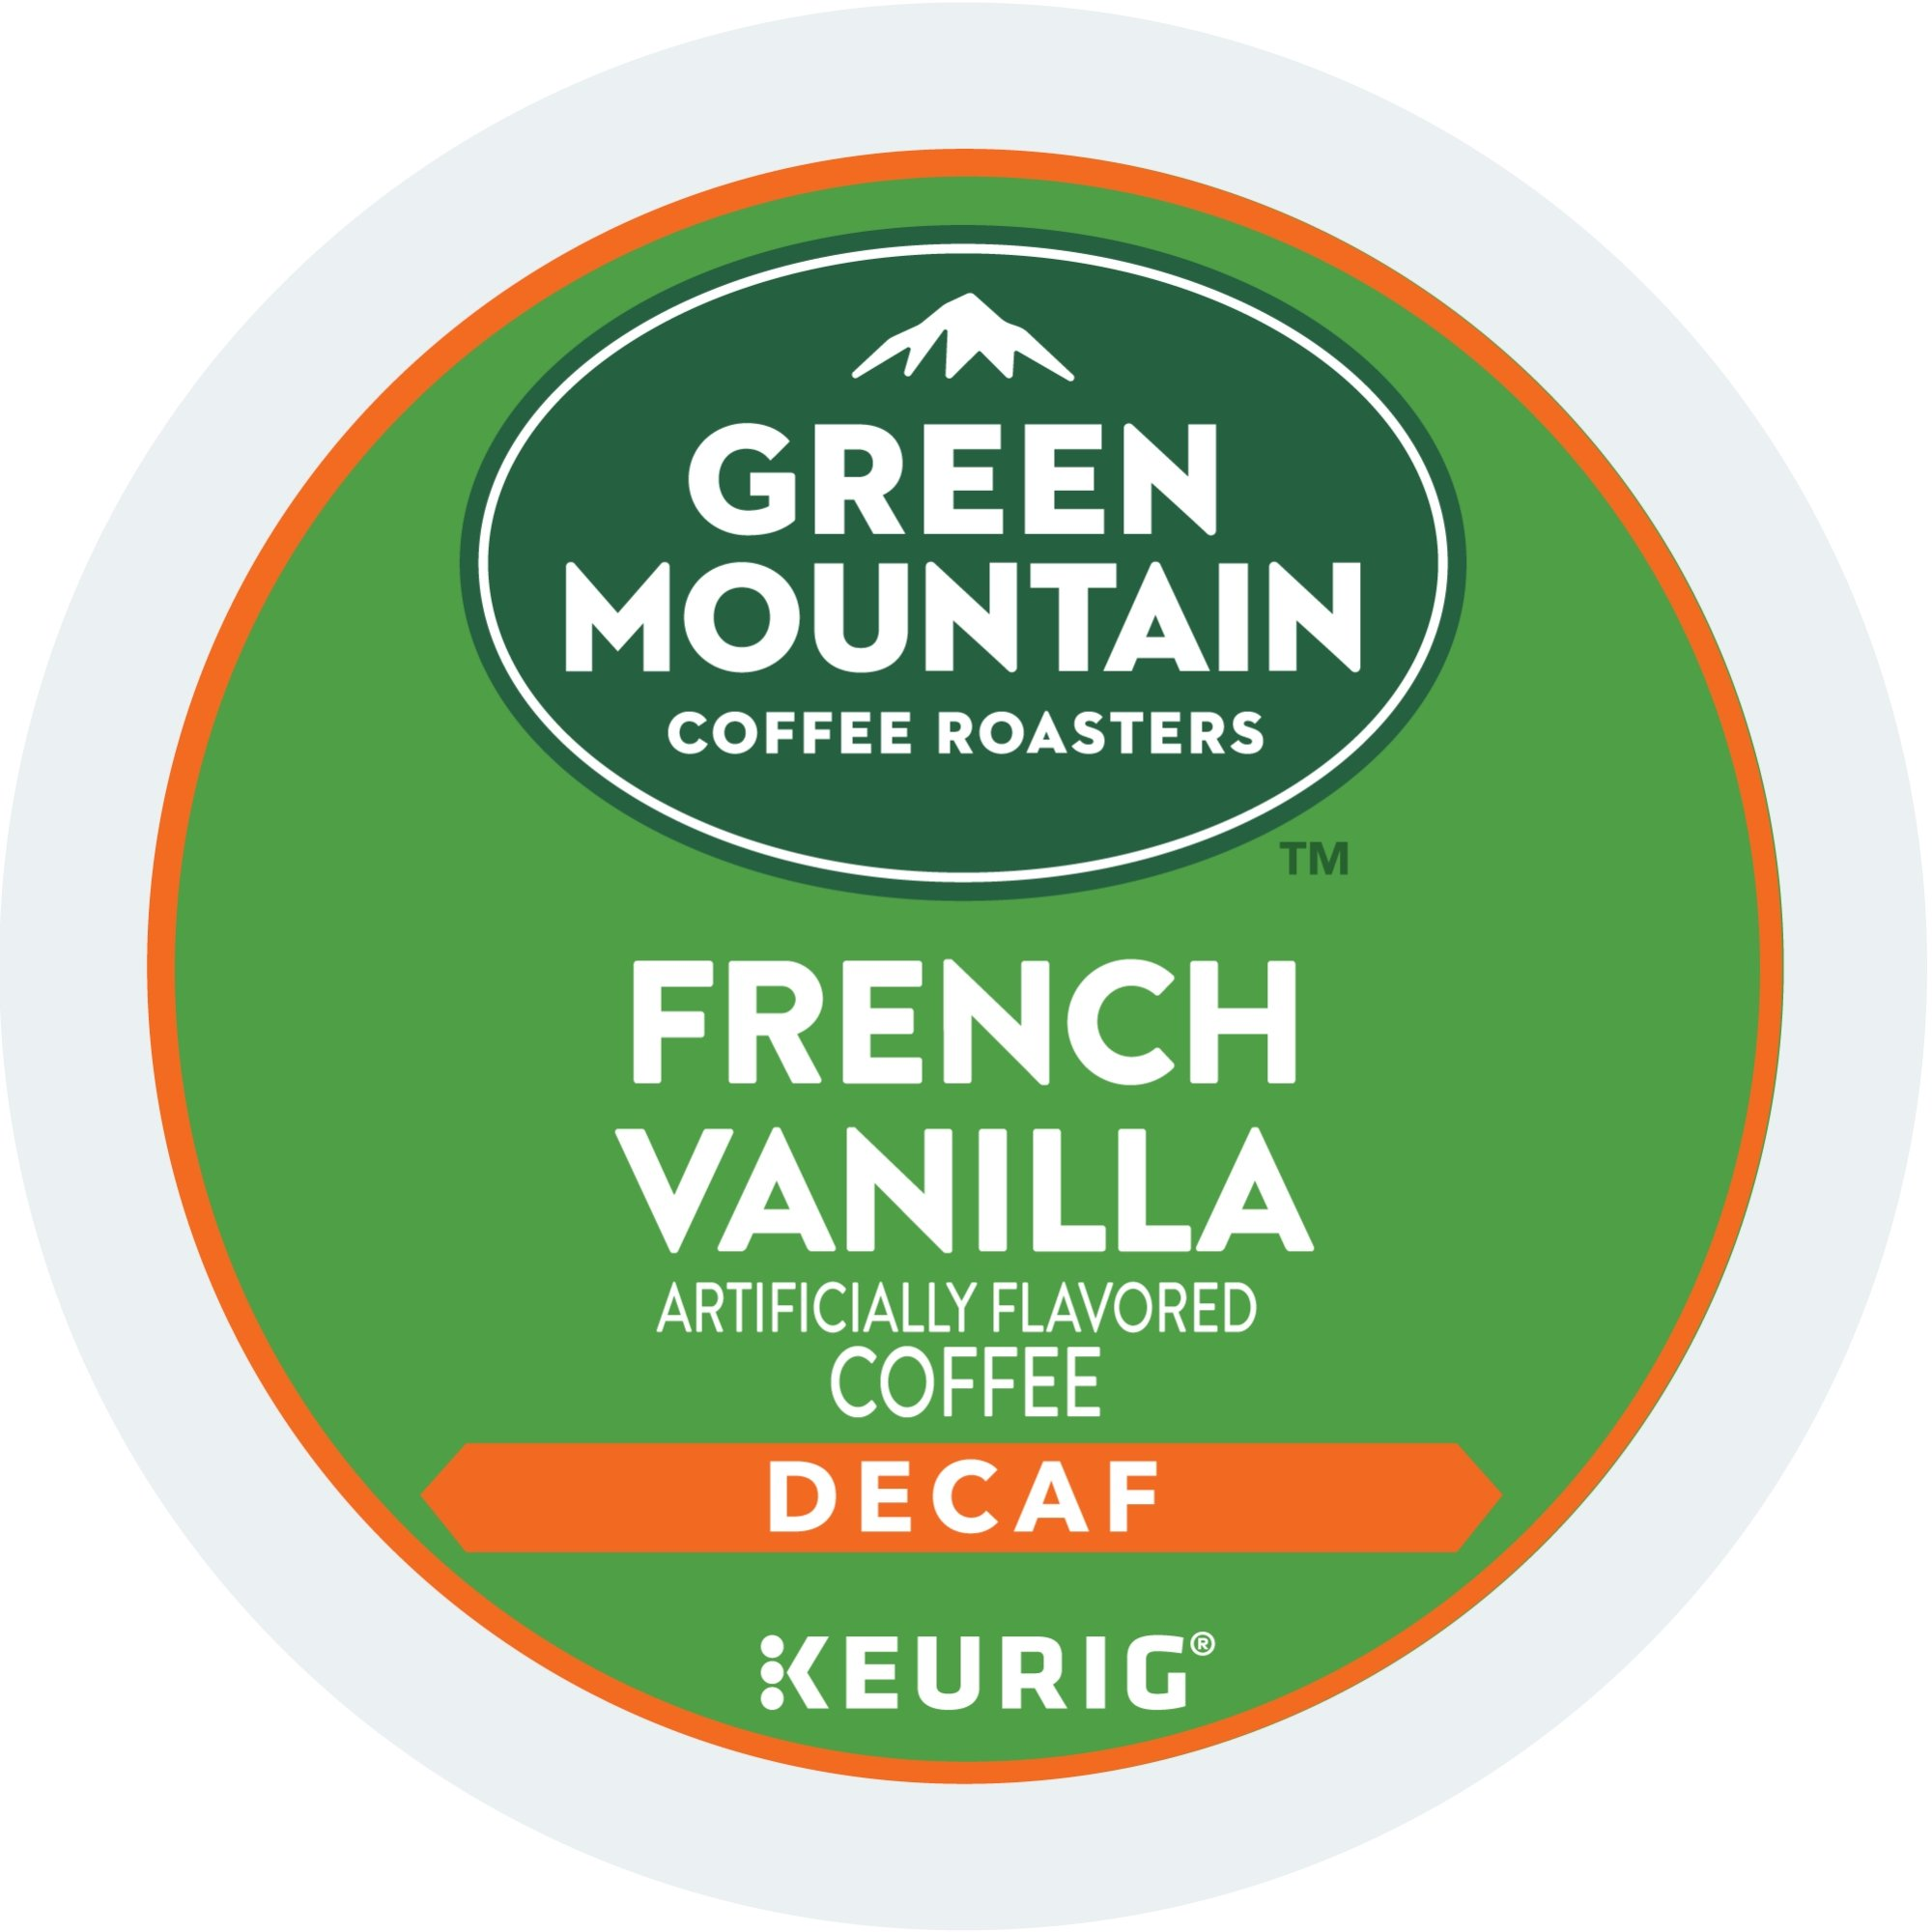 Green Mountain Coffee Roasters French Vanilla Decaf Keurig Single-Serve K-Cup Pods, Light Roast Coffee, 72 Count (6 Boxes of 12 Pods)